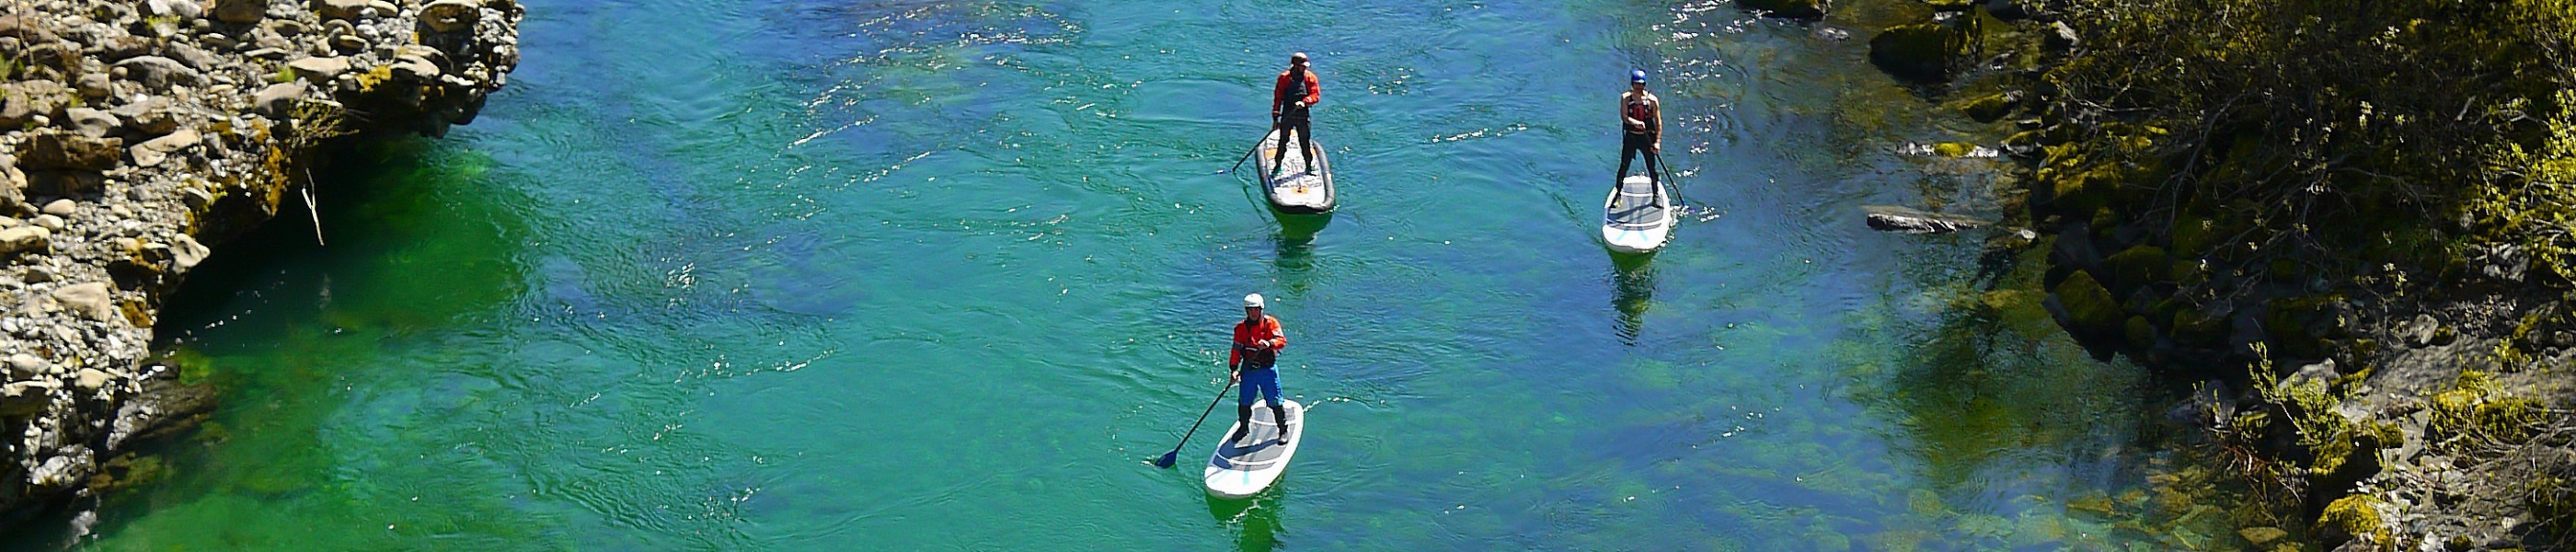 Kayakers enjoying a day on the Rogue River